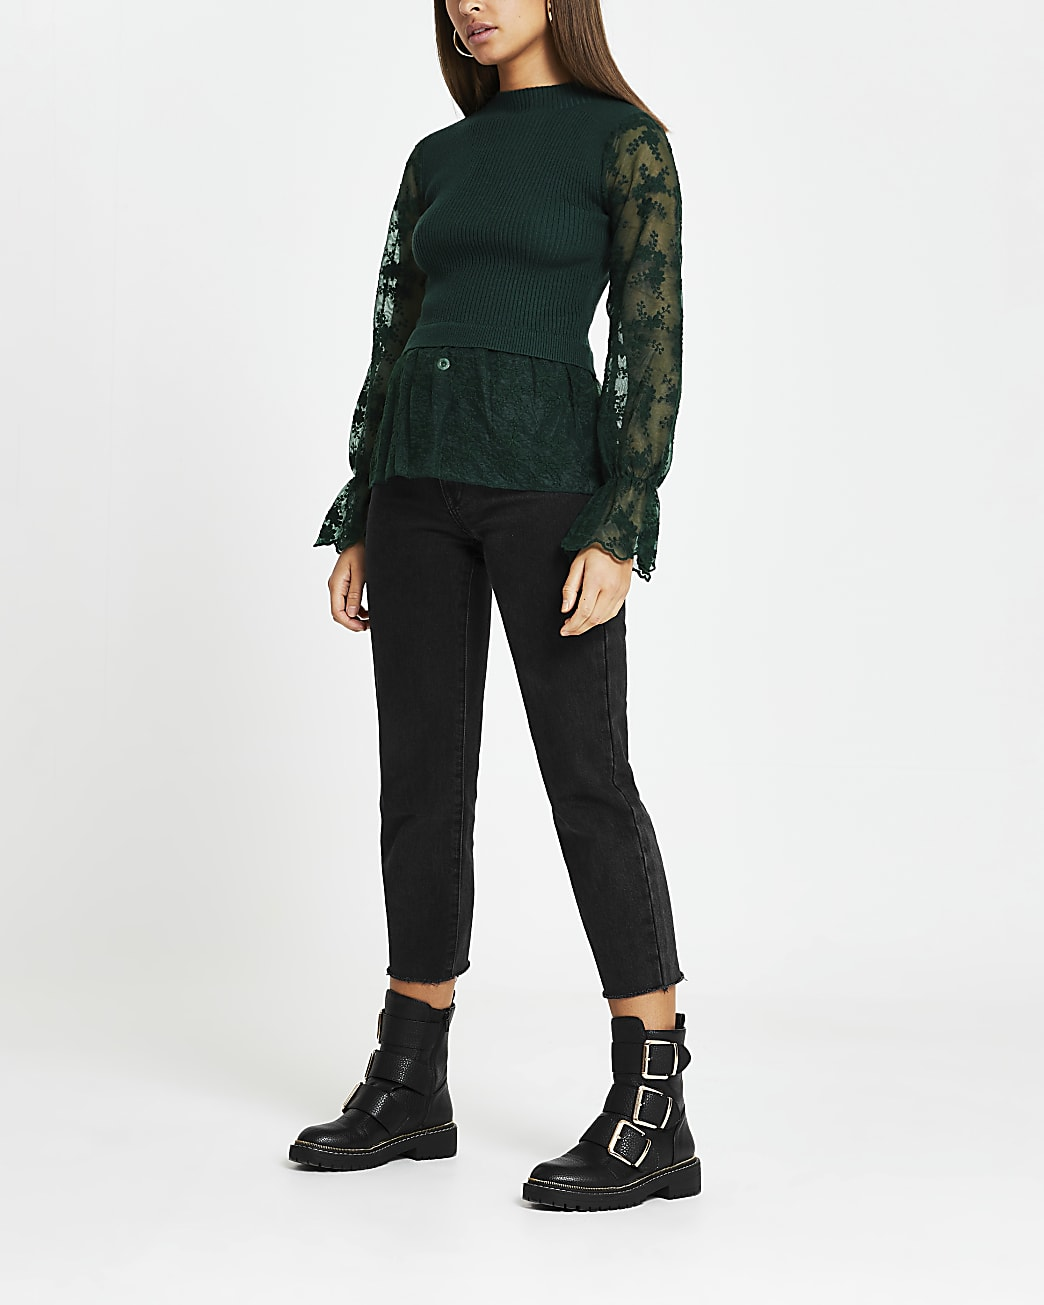 Green lace knit long sleeve top